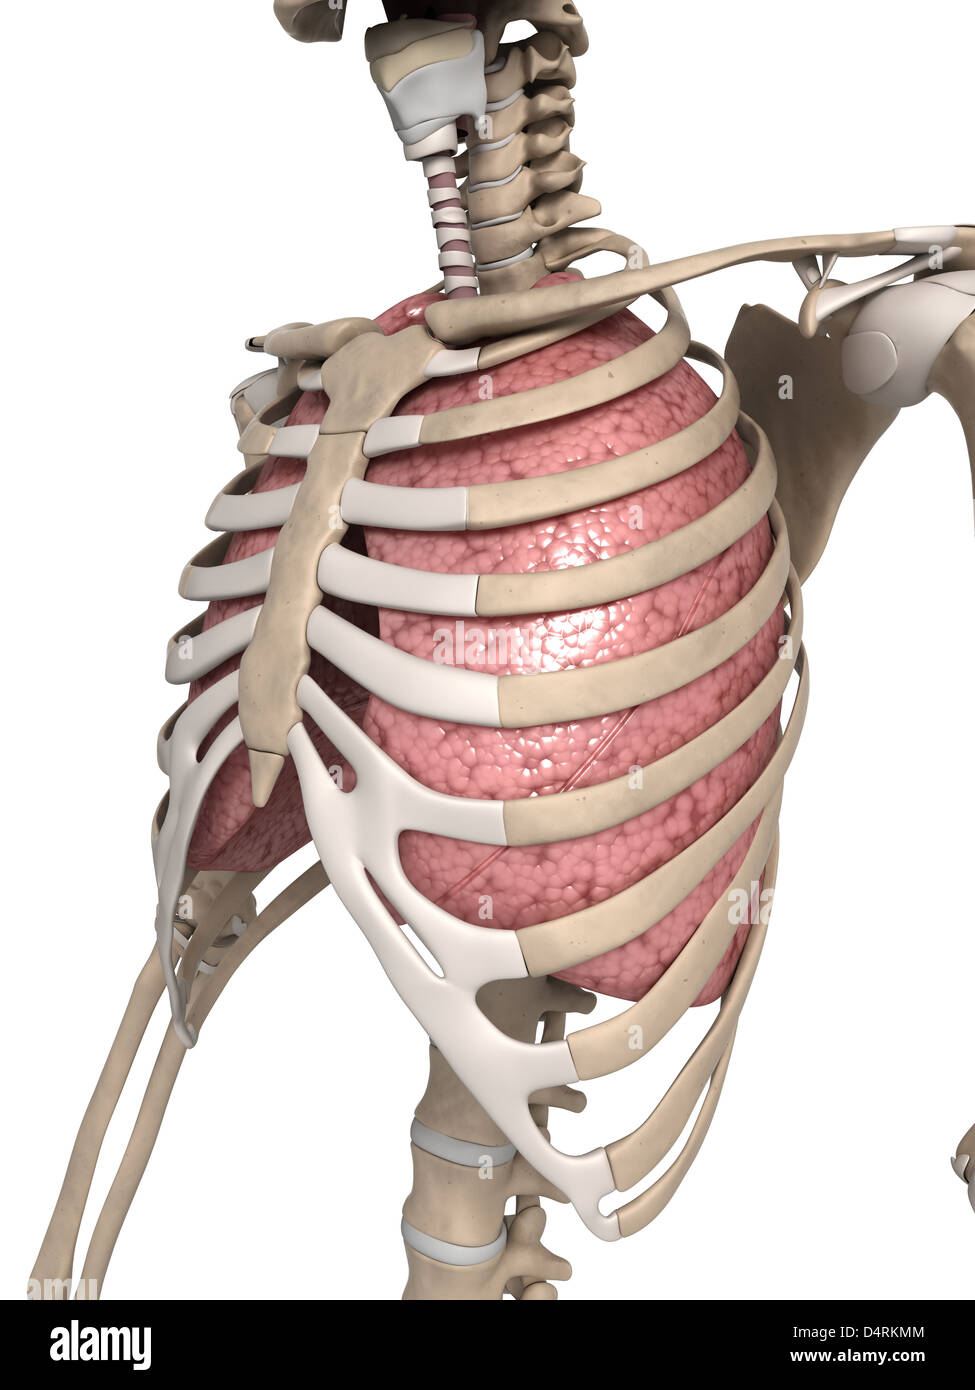 Anatomy of the lung and thorax Stock Photo: 54610100 - Alamy